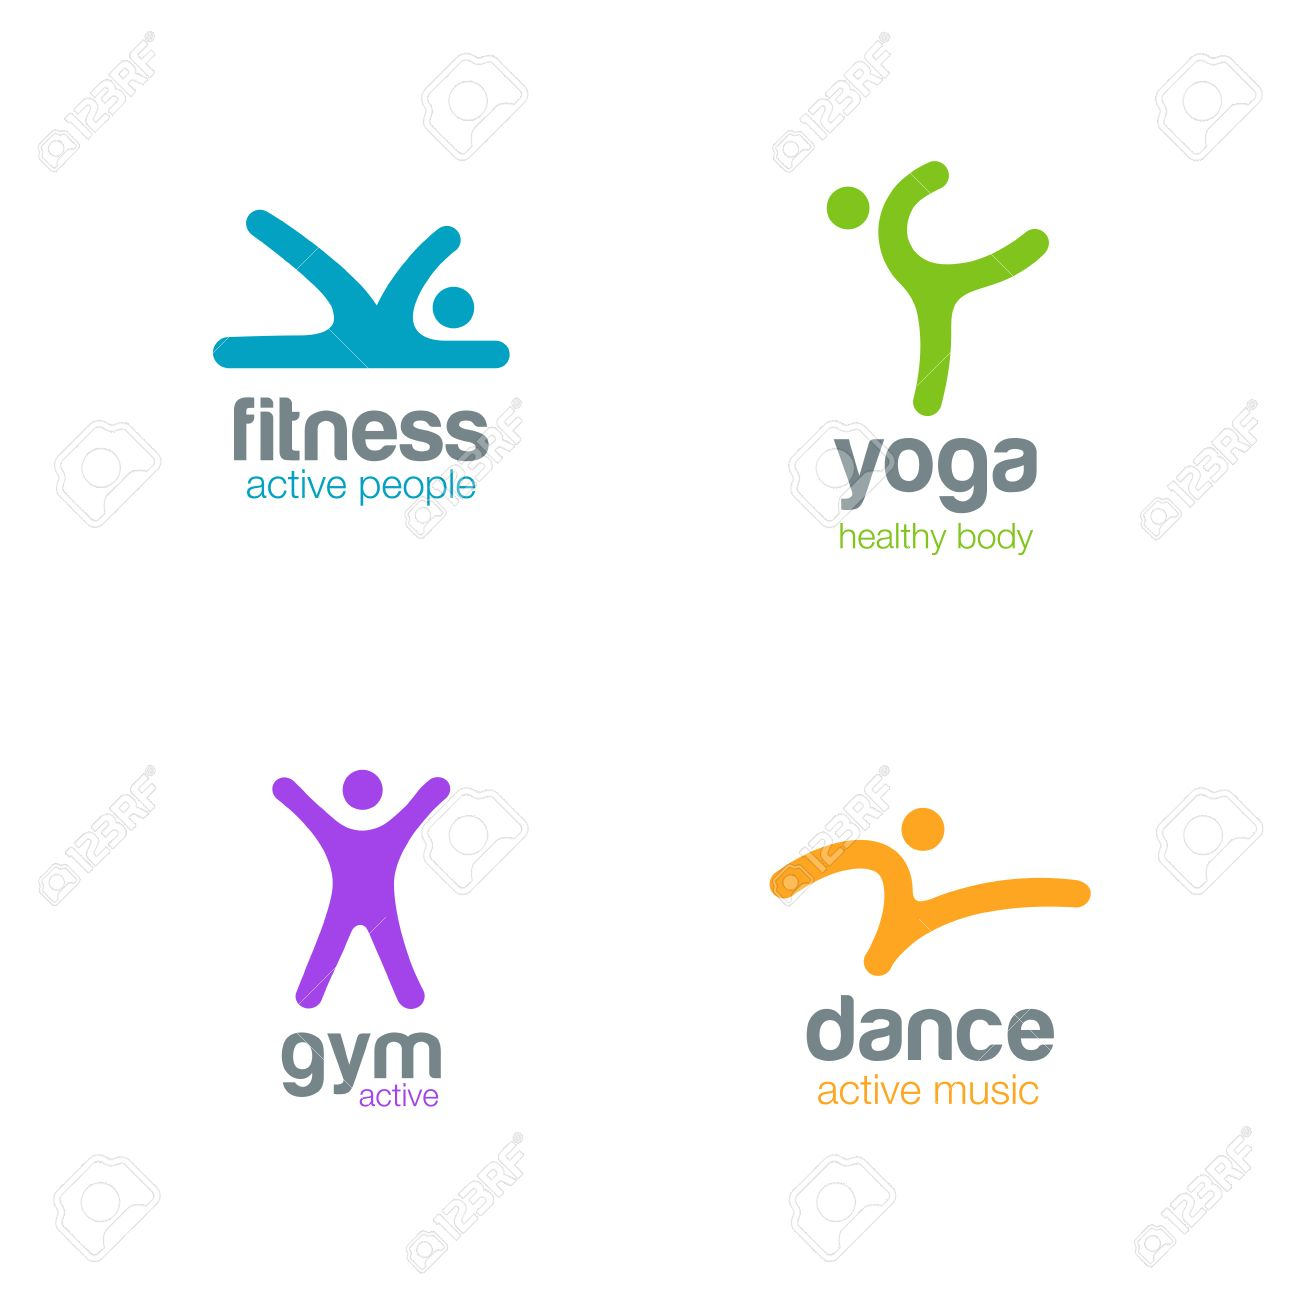 Fitness Dance Yoga Gym Logos Design Vector Templates Active Sports Colorfull Creative Simple Logotype Icons